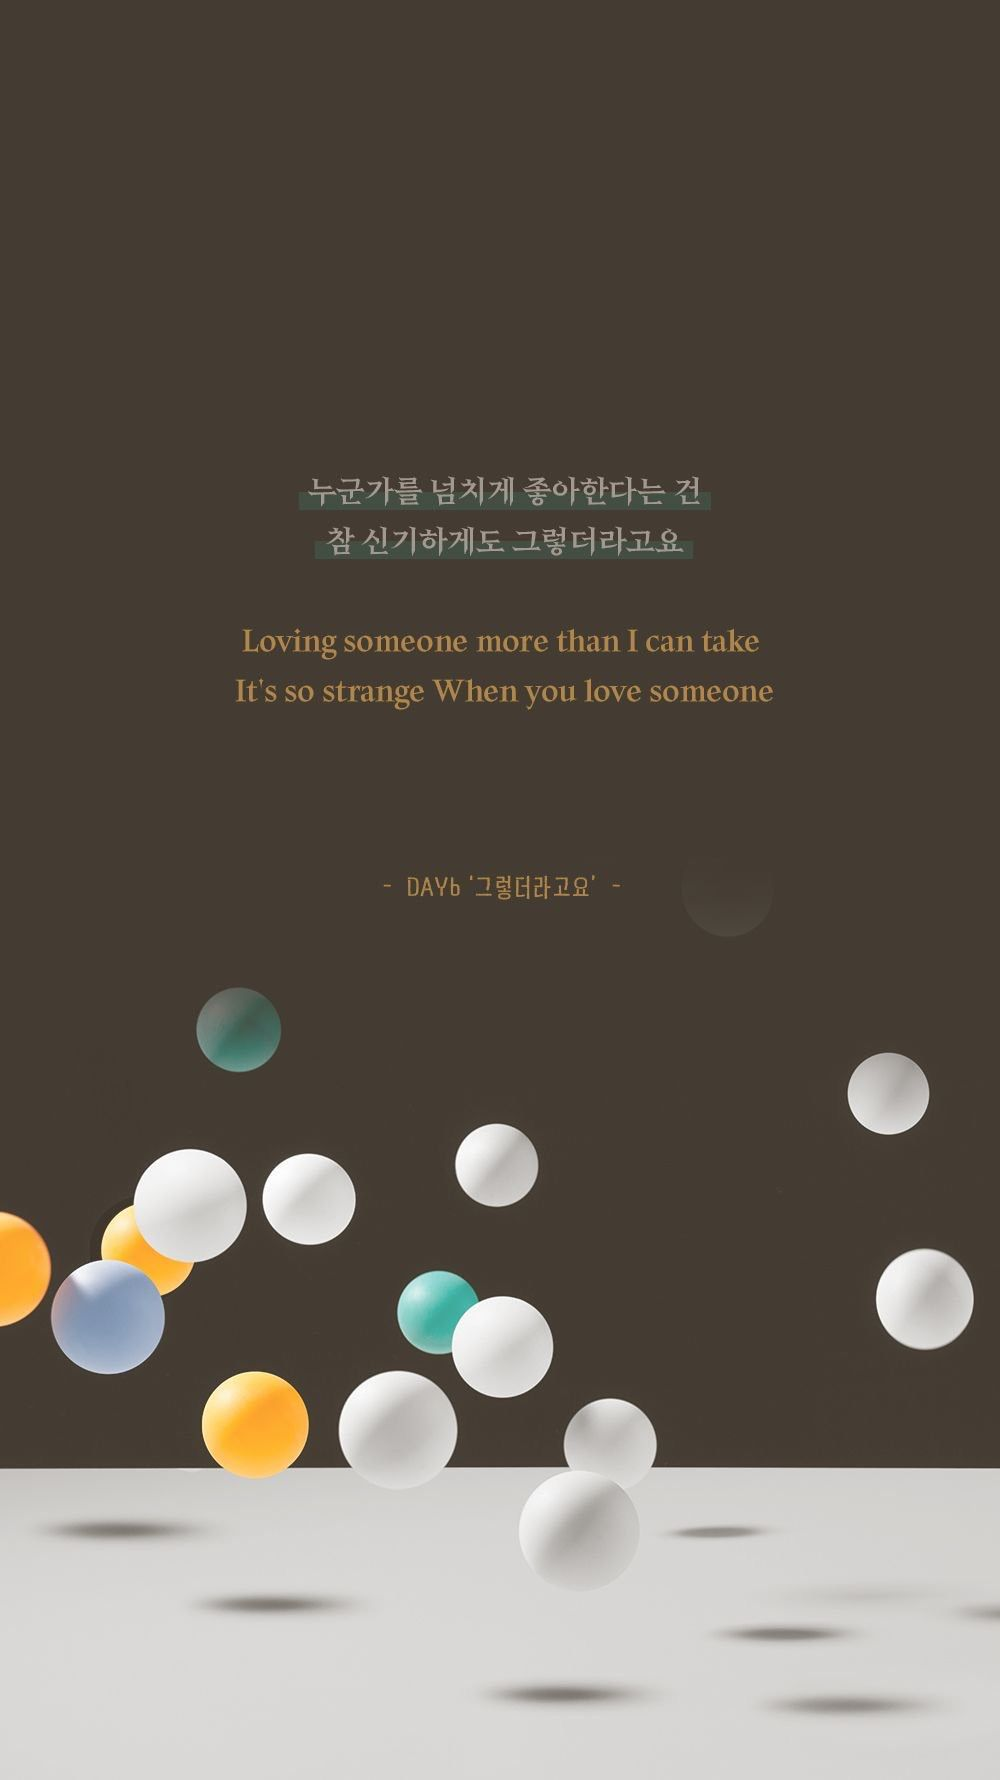 Kpopquotes Lyrics Background Day6 Kutipan Lirik Lirik Lirik Lagu